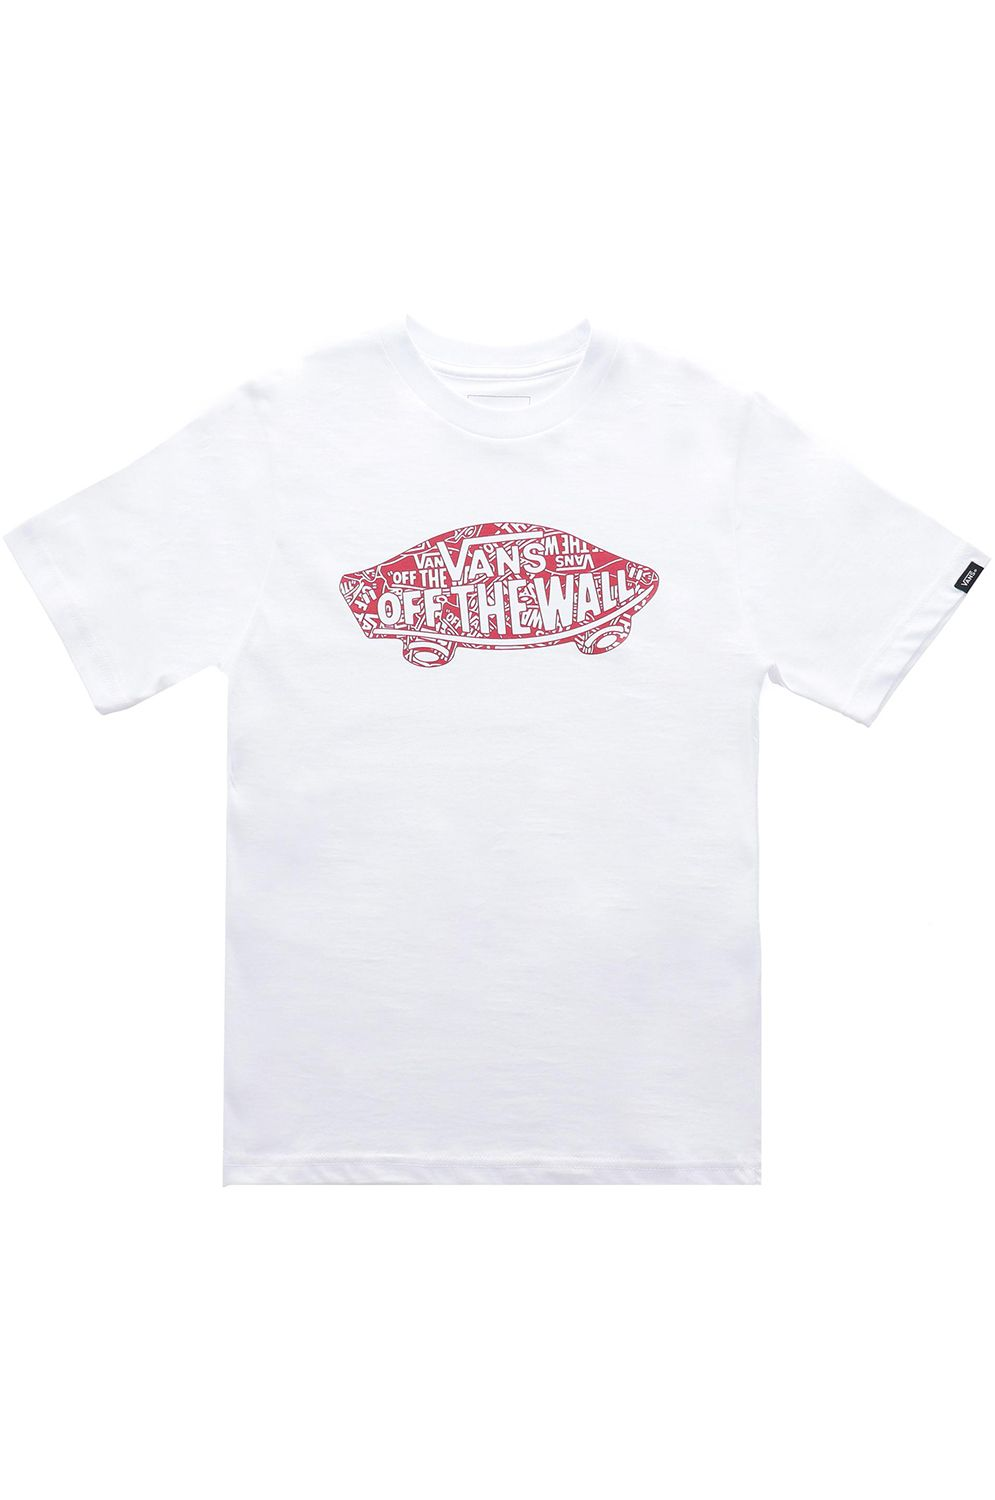 Vans T-Shirt OTW LOGO FILL White/Otw Racing Red